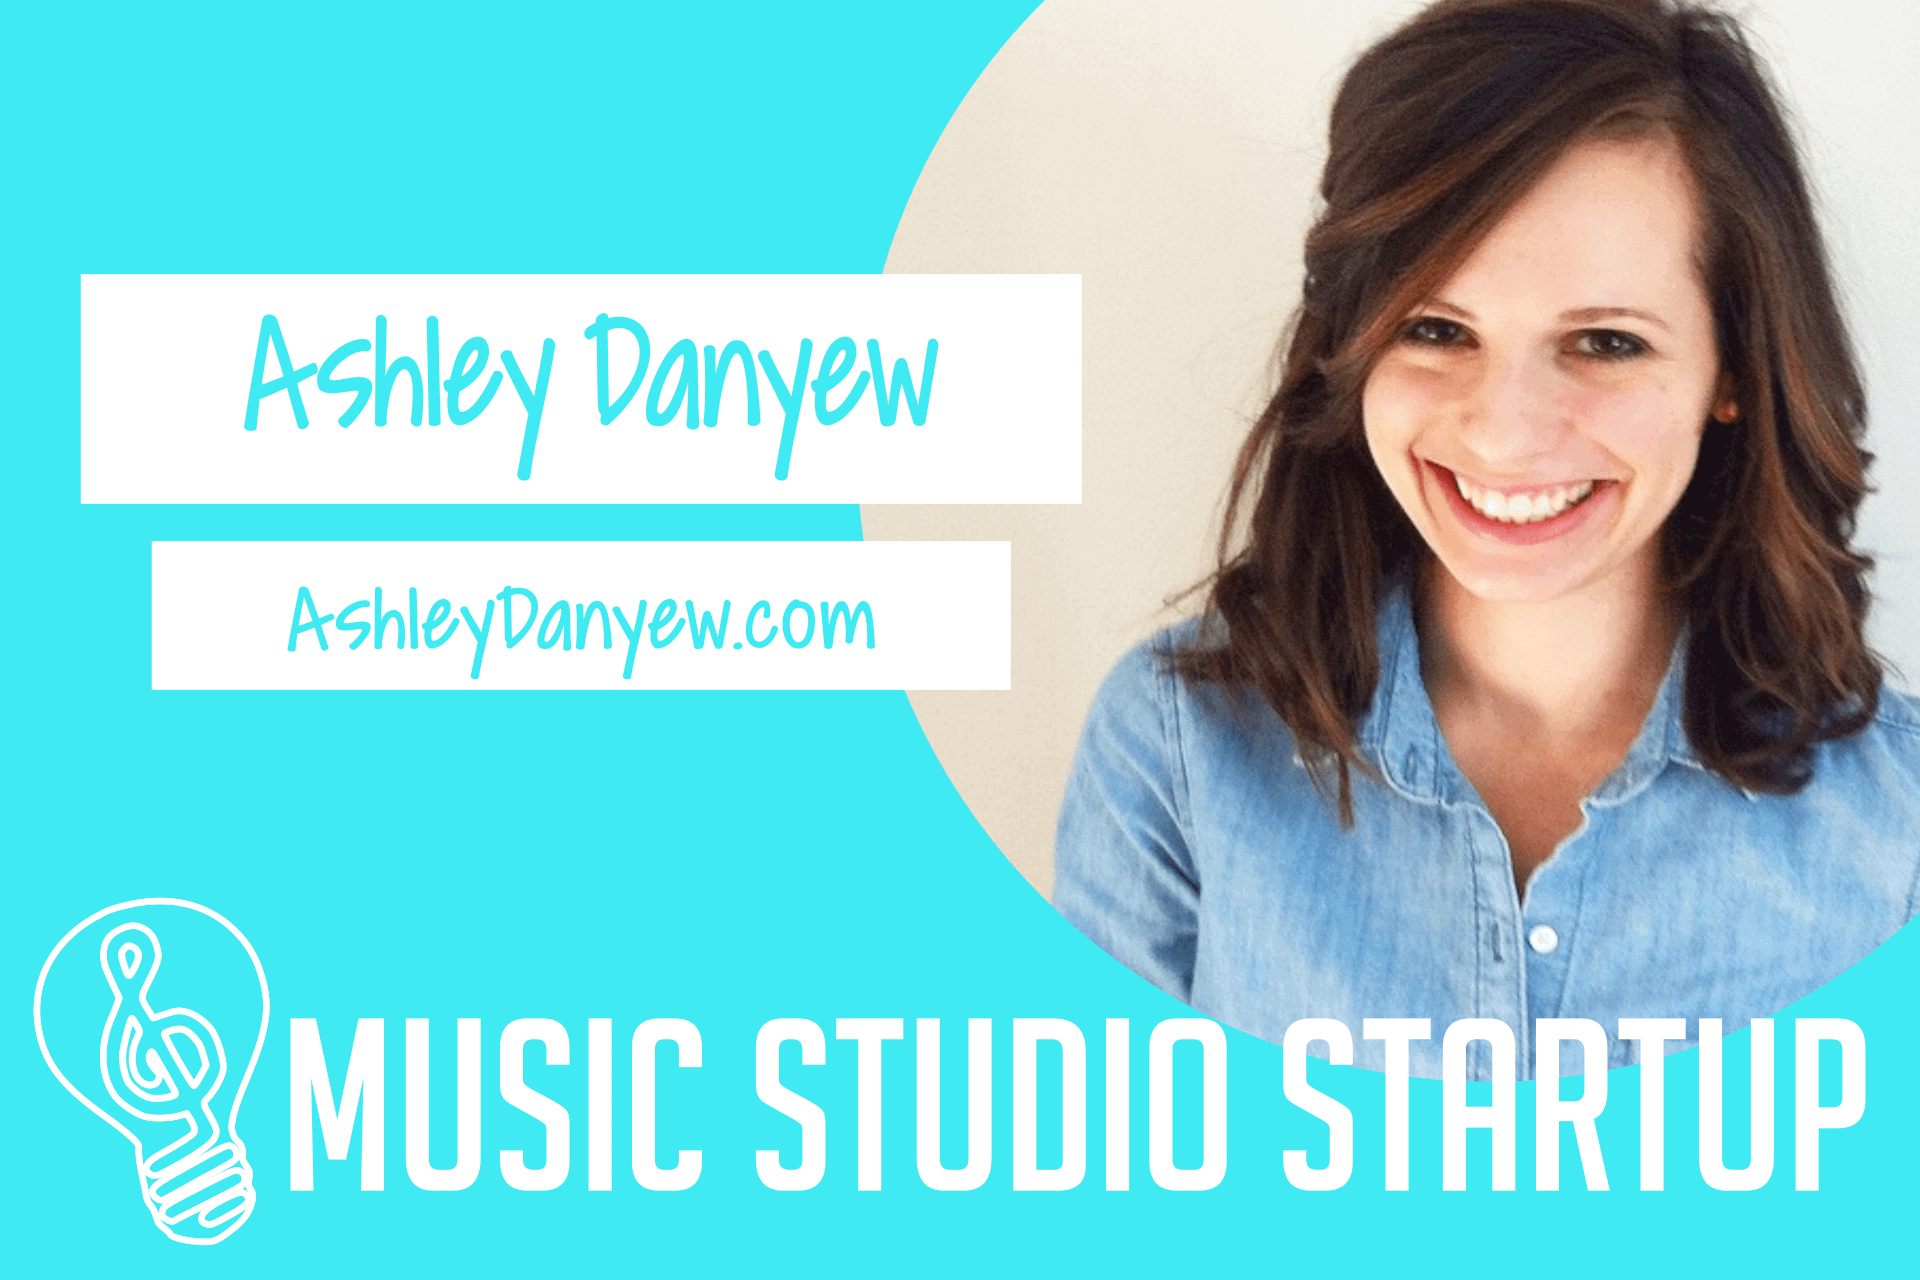 Episode 013 – Ashley Danyew on Creating and Marketing Online Courses